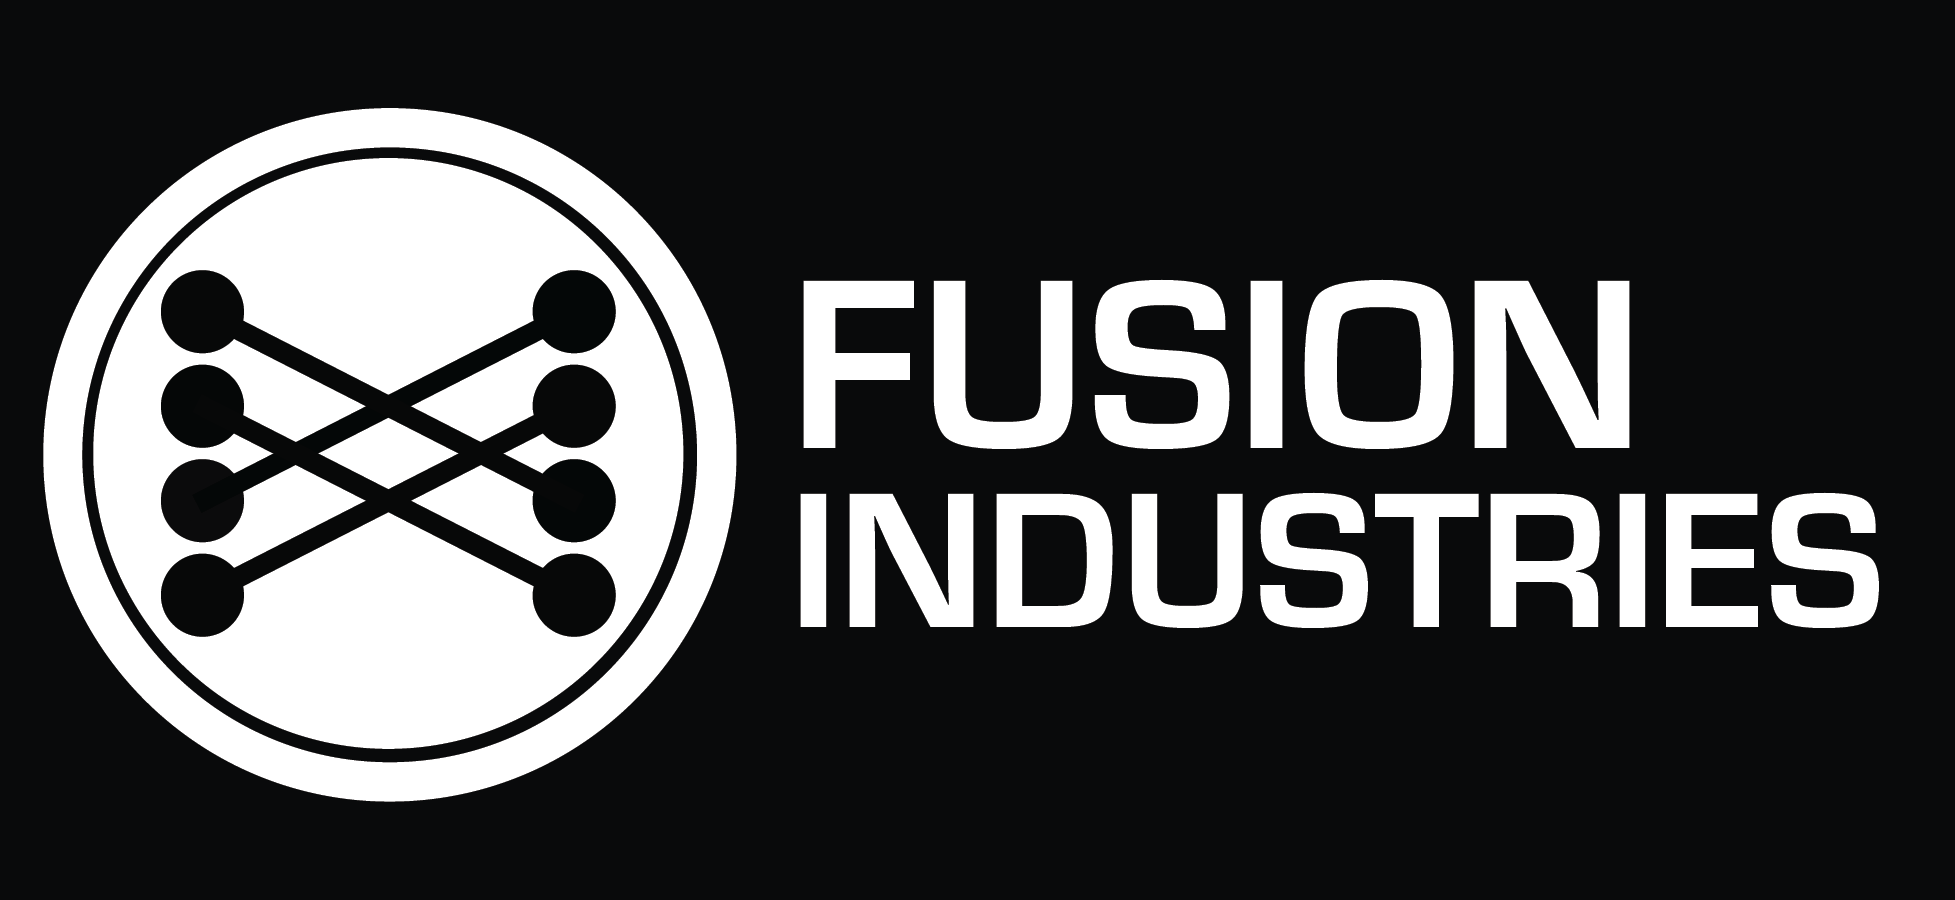 Fusion Industries Ltd.